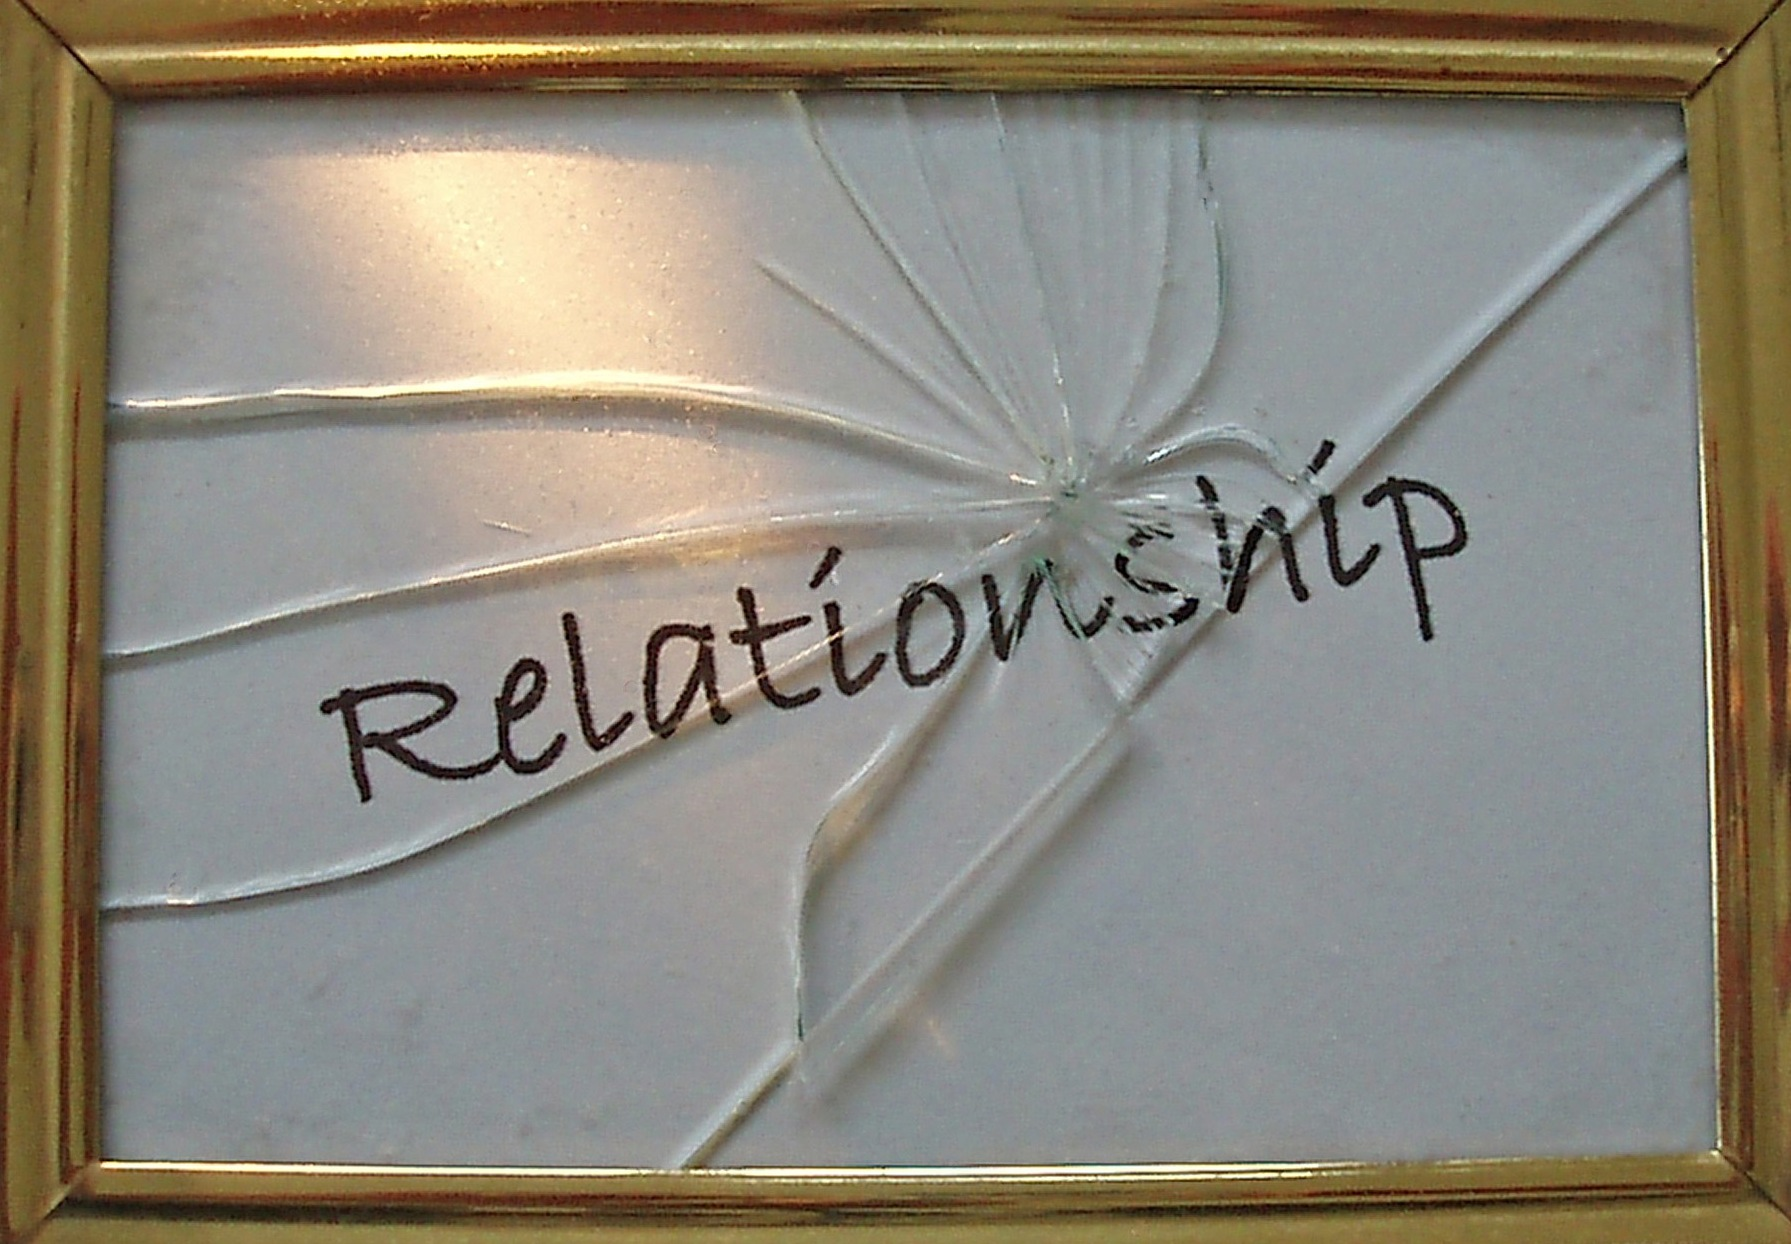 Breaking Up a Relationship Doesn't Have to be Difficult